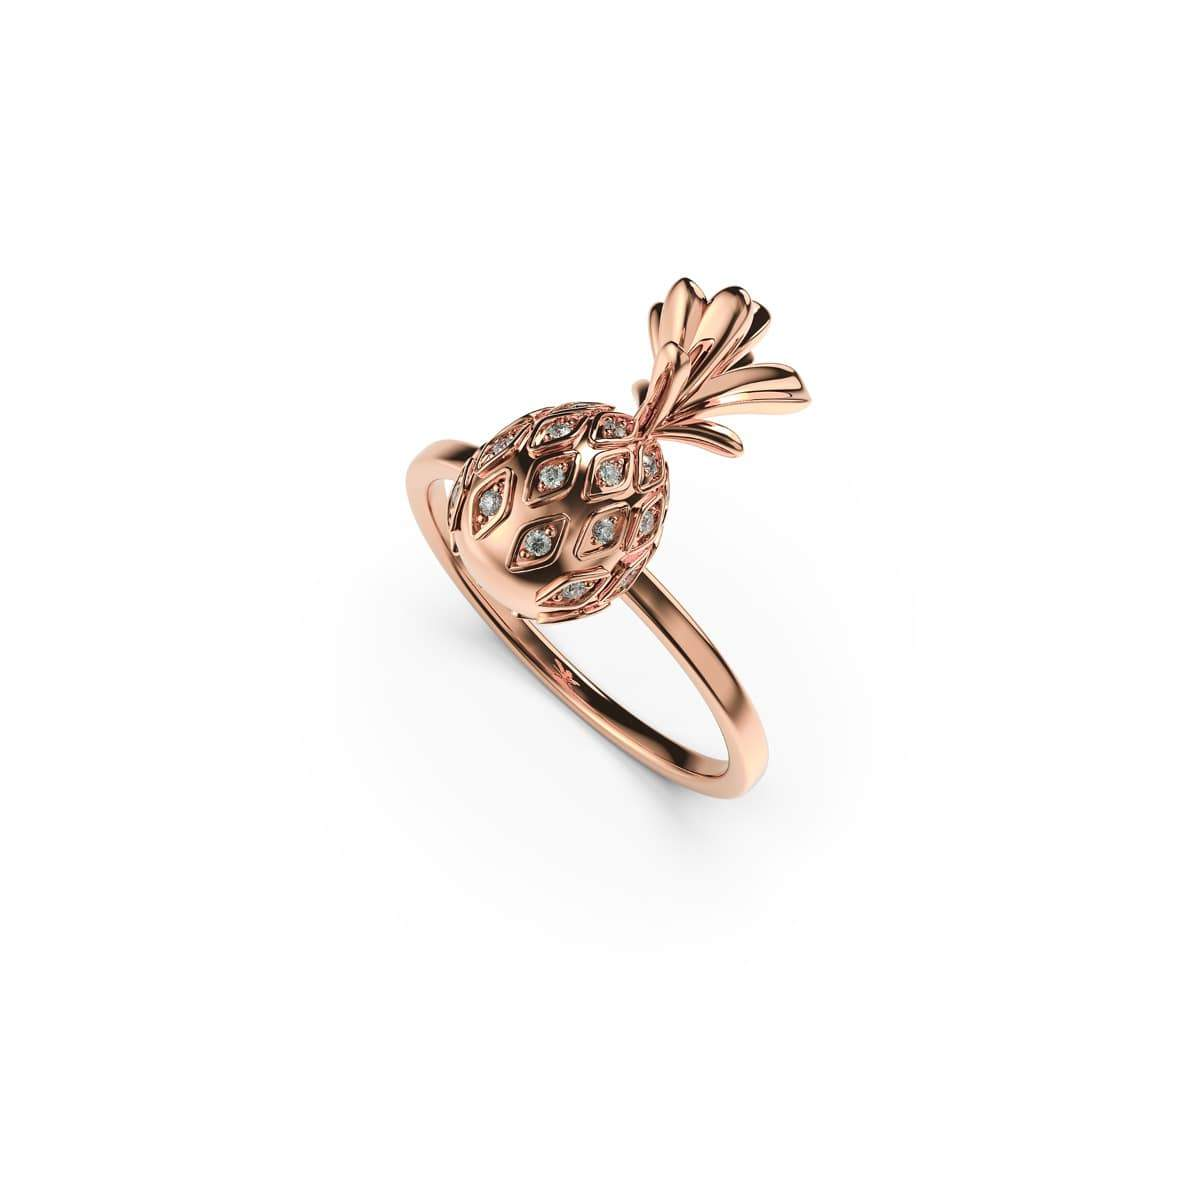 Pina Colada | 18k Rose Gold Vermeil | .925 Sterling Silver | Cubic Zirconia Crystal Pineapple Ring